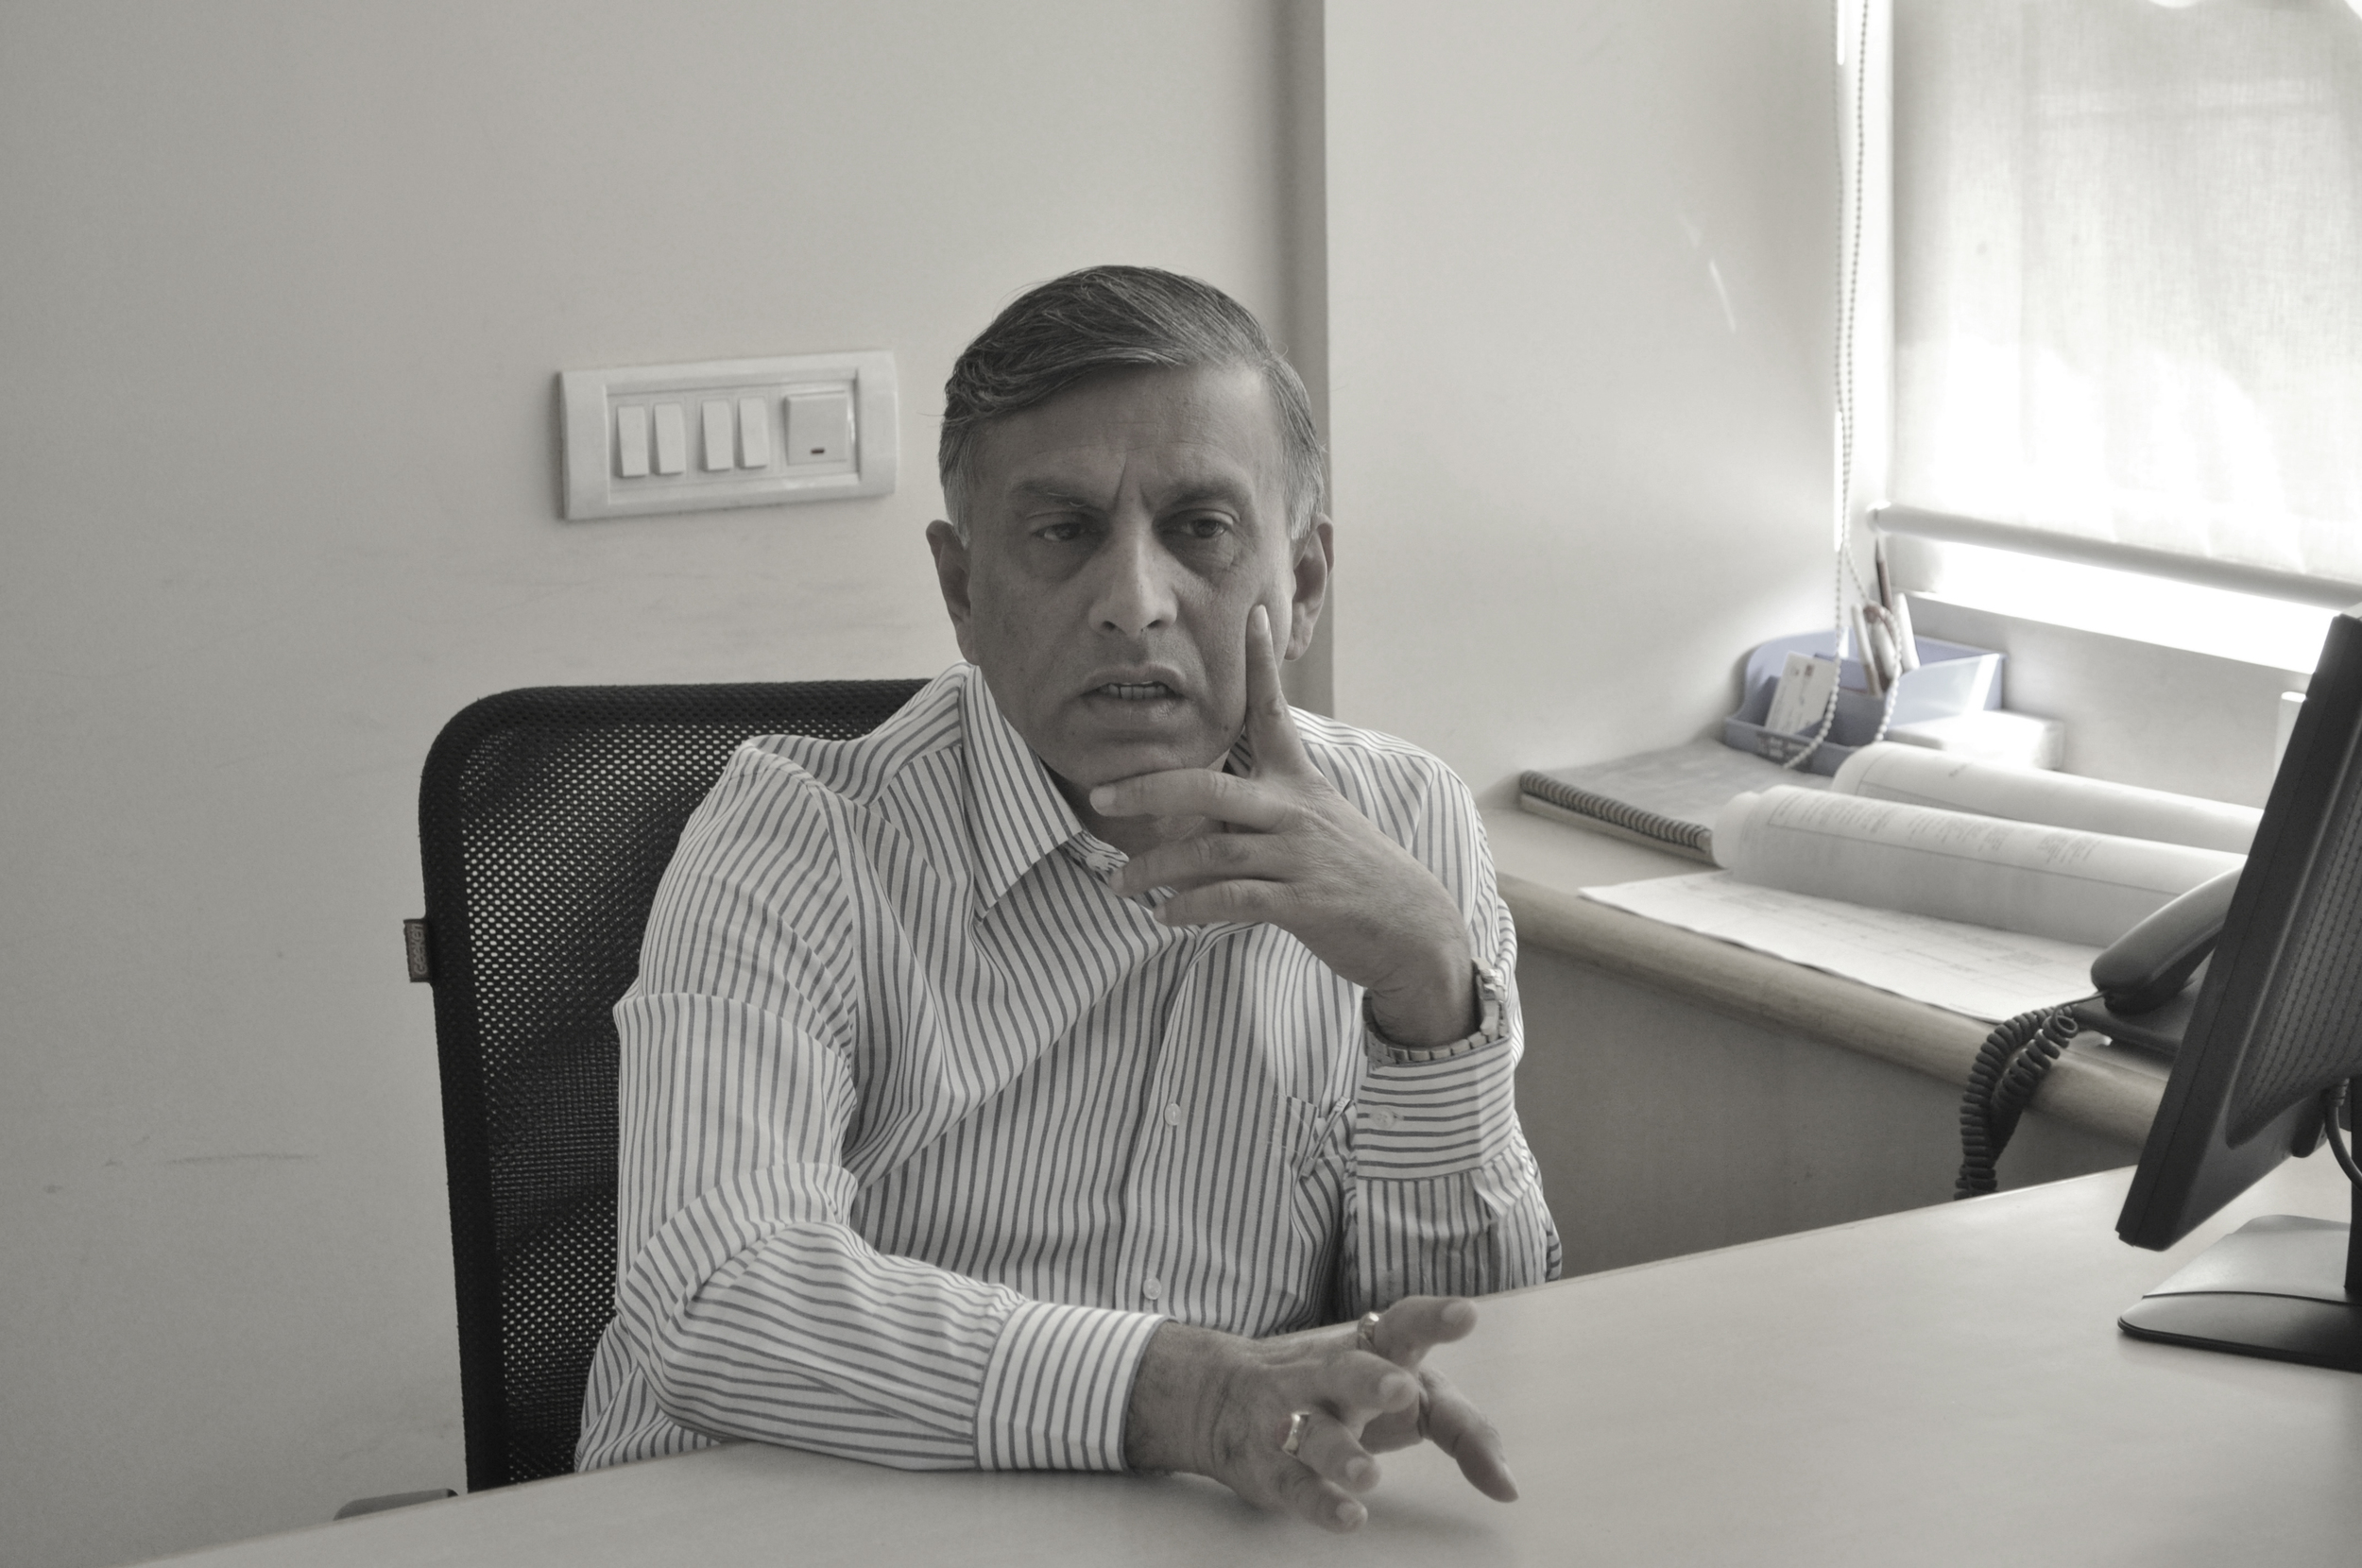 Uday Pande   Founding Partner  Fellow, Indian Institute of Architects  Fellow, Indian Institute of Town Planners  Uday Pande is a Founding Partner in N+U Design Studio. He has led the firm since its inception. With a clear vision and continuous & persuasive efforts, he has brought the firm to a leading position. His thorough understanding of government norms and policies of various states has resultedin the firm's presense through out the country. It has also enriched the portfolio with works in both private and public sector.  He has mentored team leaders with a strong sense of responsibility towards clients & projects, always aiming for high quality standards in delivering the work. His zeal and management skills have helped in pushing several projects through timely completion. It was his vision that today N+U Design Studio offers comprehensiveservicessuch as Architecture, Urban Planning, Interior Designing, MEP, HVAC, all under one roof.  Mr. Pande completed Bachelor of Architecture from Visvesvaraya Regional College of Engineering (now VNIT), Nagpur in 1979 and Master's degree in Urban & Regional Planning at School of Planning & Architecture, New Delhi. Before founding Nivedita & Uday Pande Consultants in 1992, Mr. Pande worked with Bombay Metropolitan Region Development Authority (now MMRDA), Delhi Development Authority and ECMC Design Group which he founded and lead for five years.